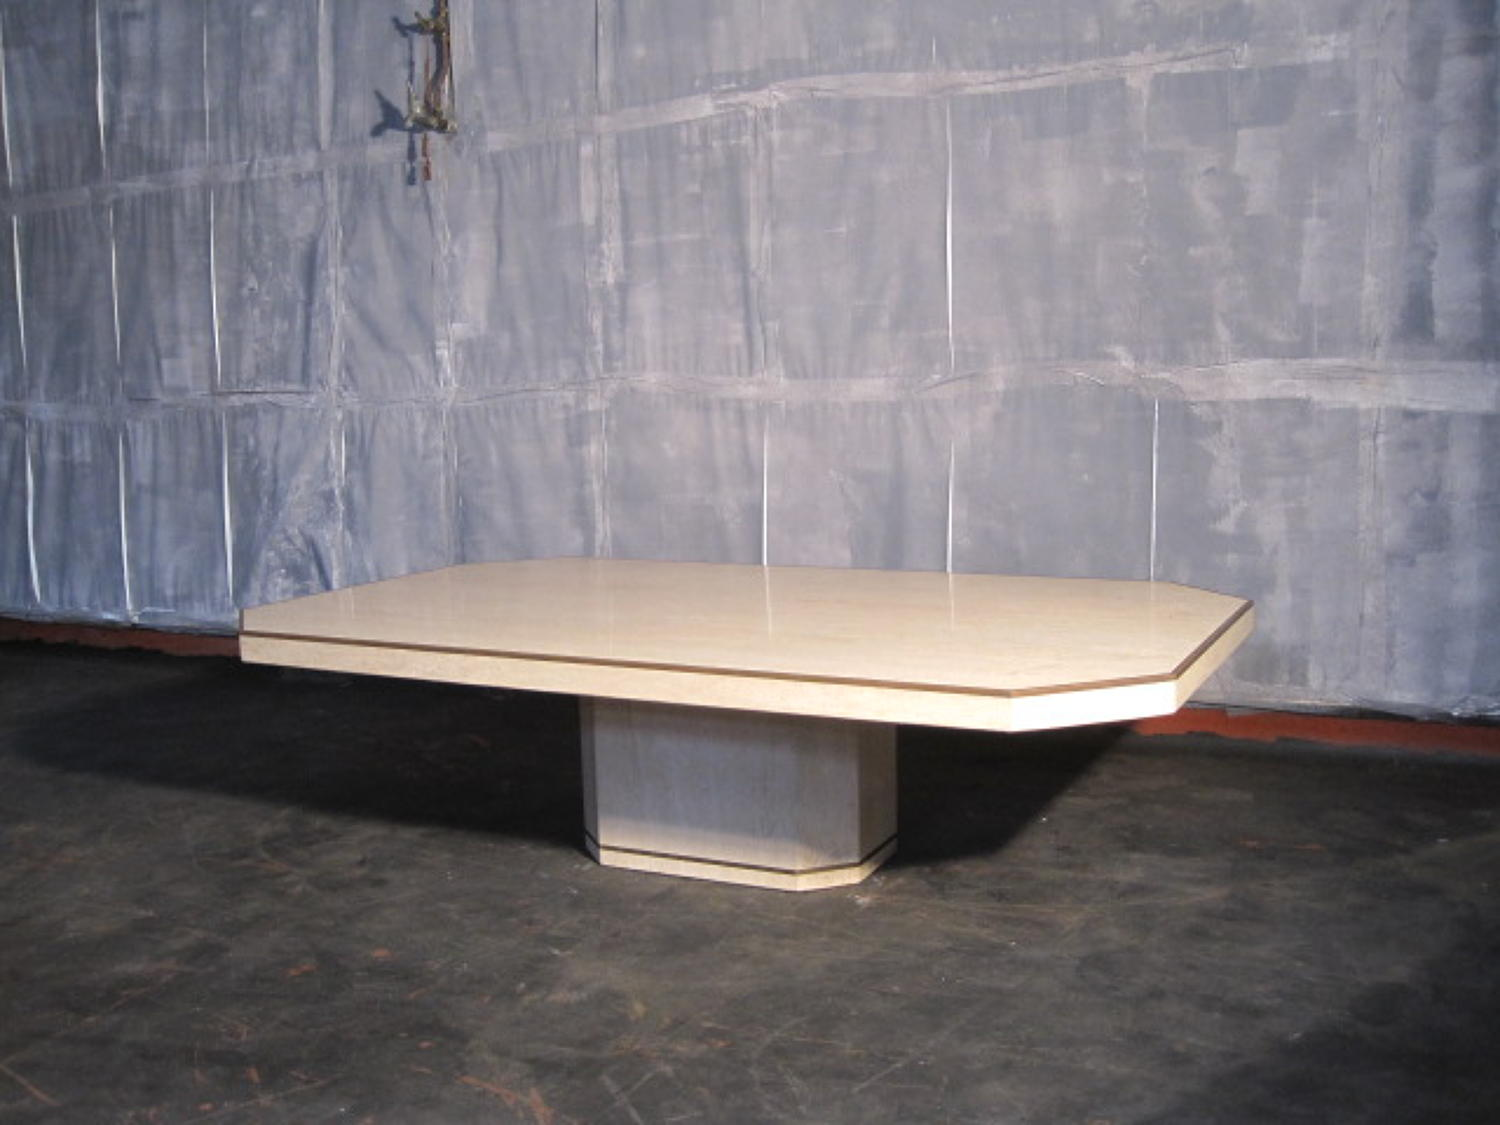 Travertine marble and bronze coffee table by Willy Rizzo